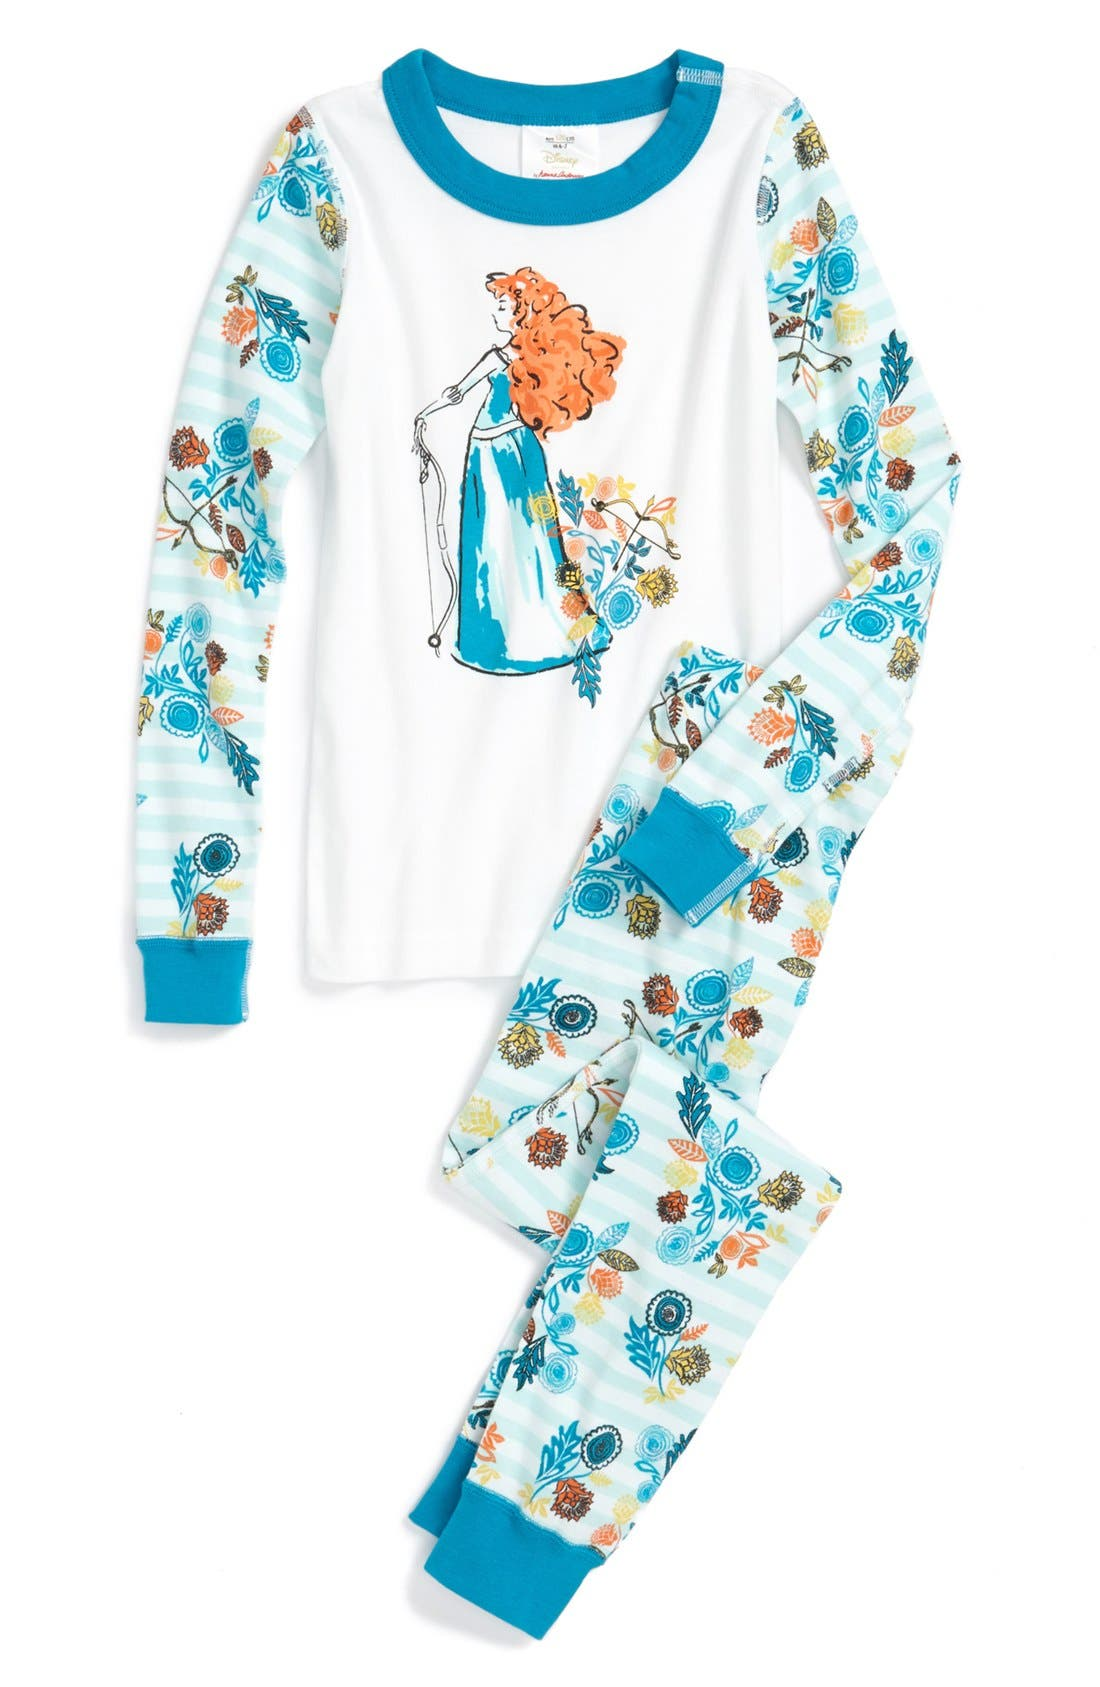 Alternate Image 1 Selected - Hanna Andersson 'Disney™ Princess - Merida' Two-Piece Fitted Pajamas (Toddler Girls)